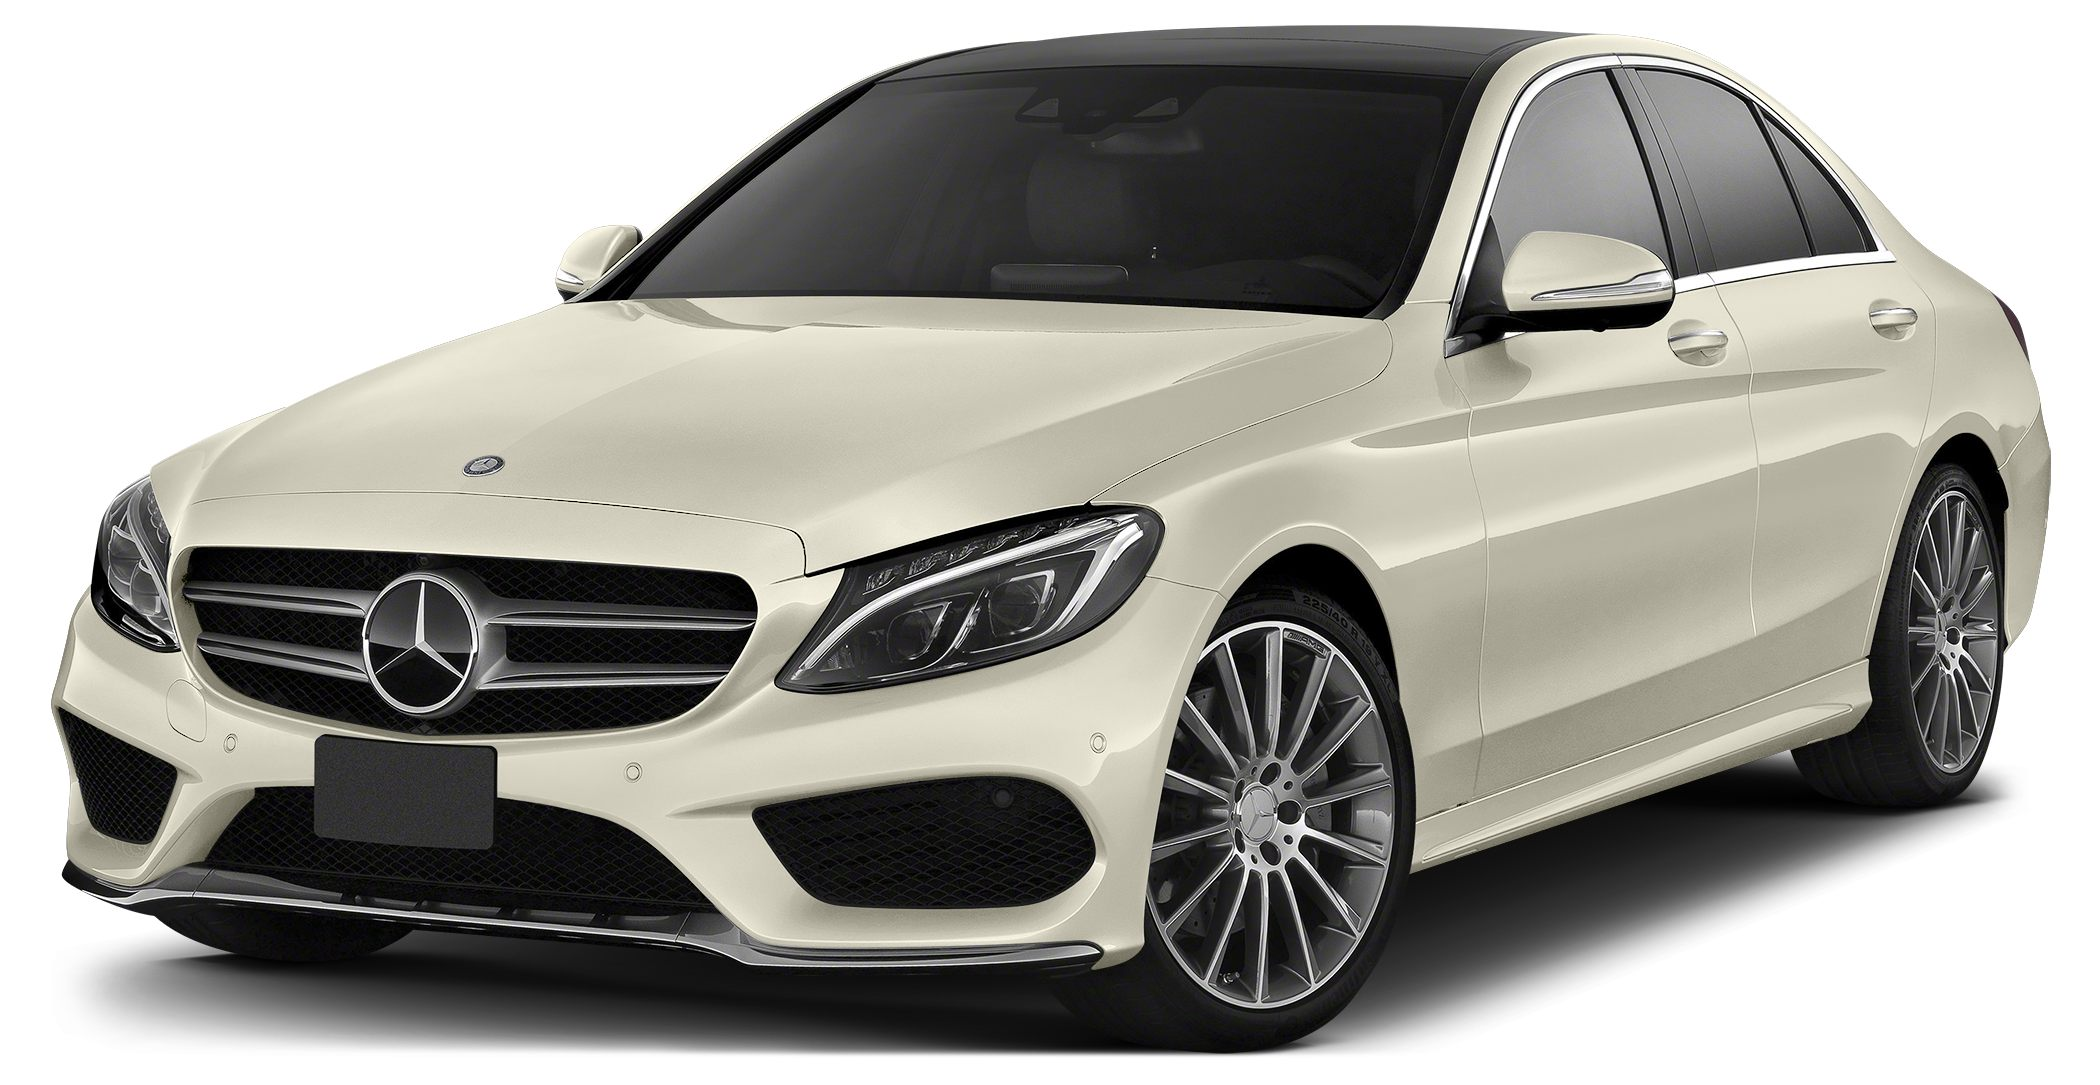 2015 MERCEDES C-Class C300 This 2015 C300 is a low mileage MBUSA employee lease unit now up for sa